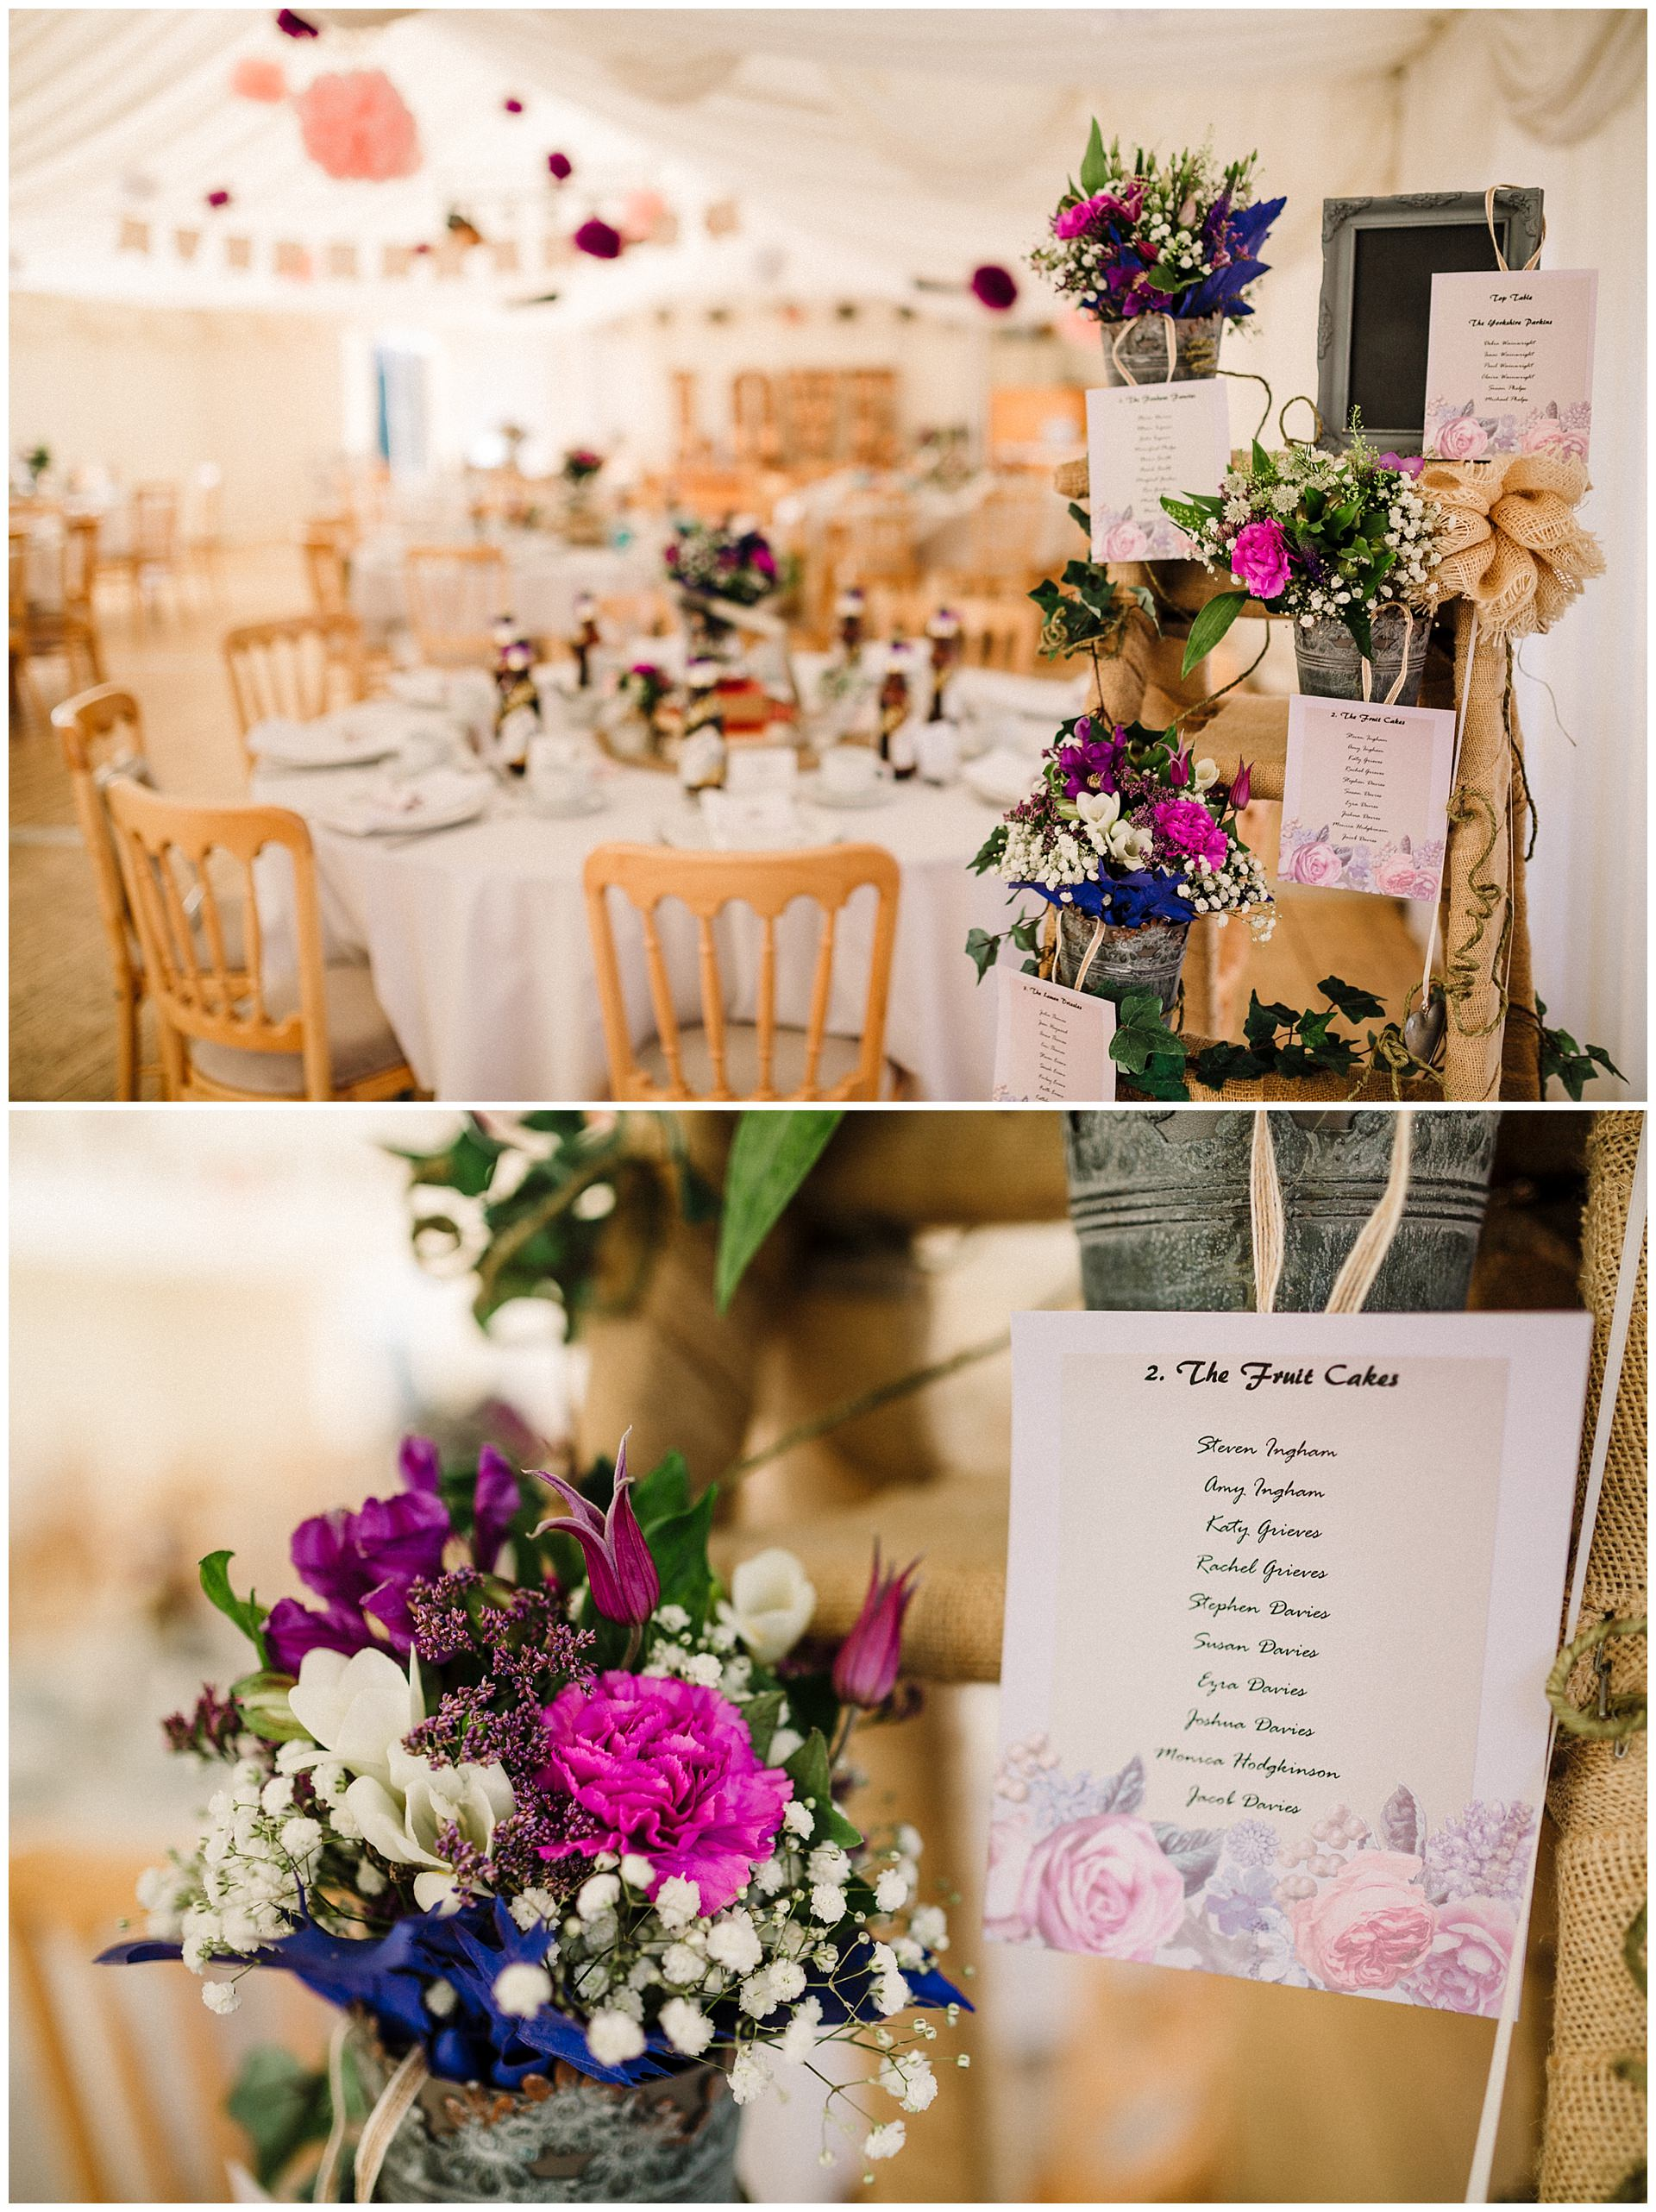 a yorkshire wedding table plan surrounded by flowers